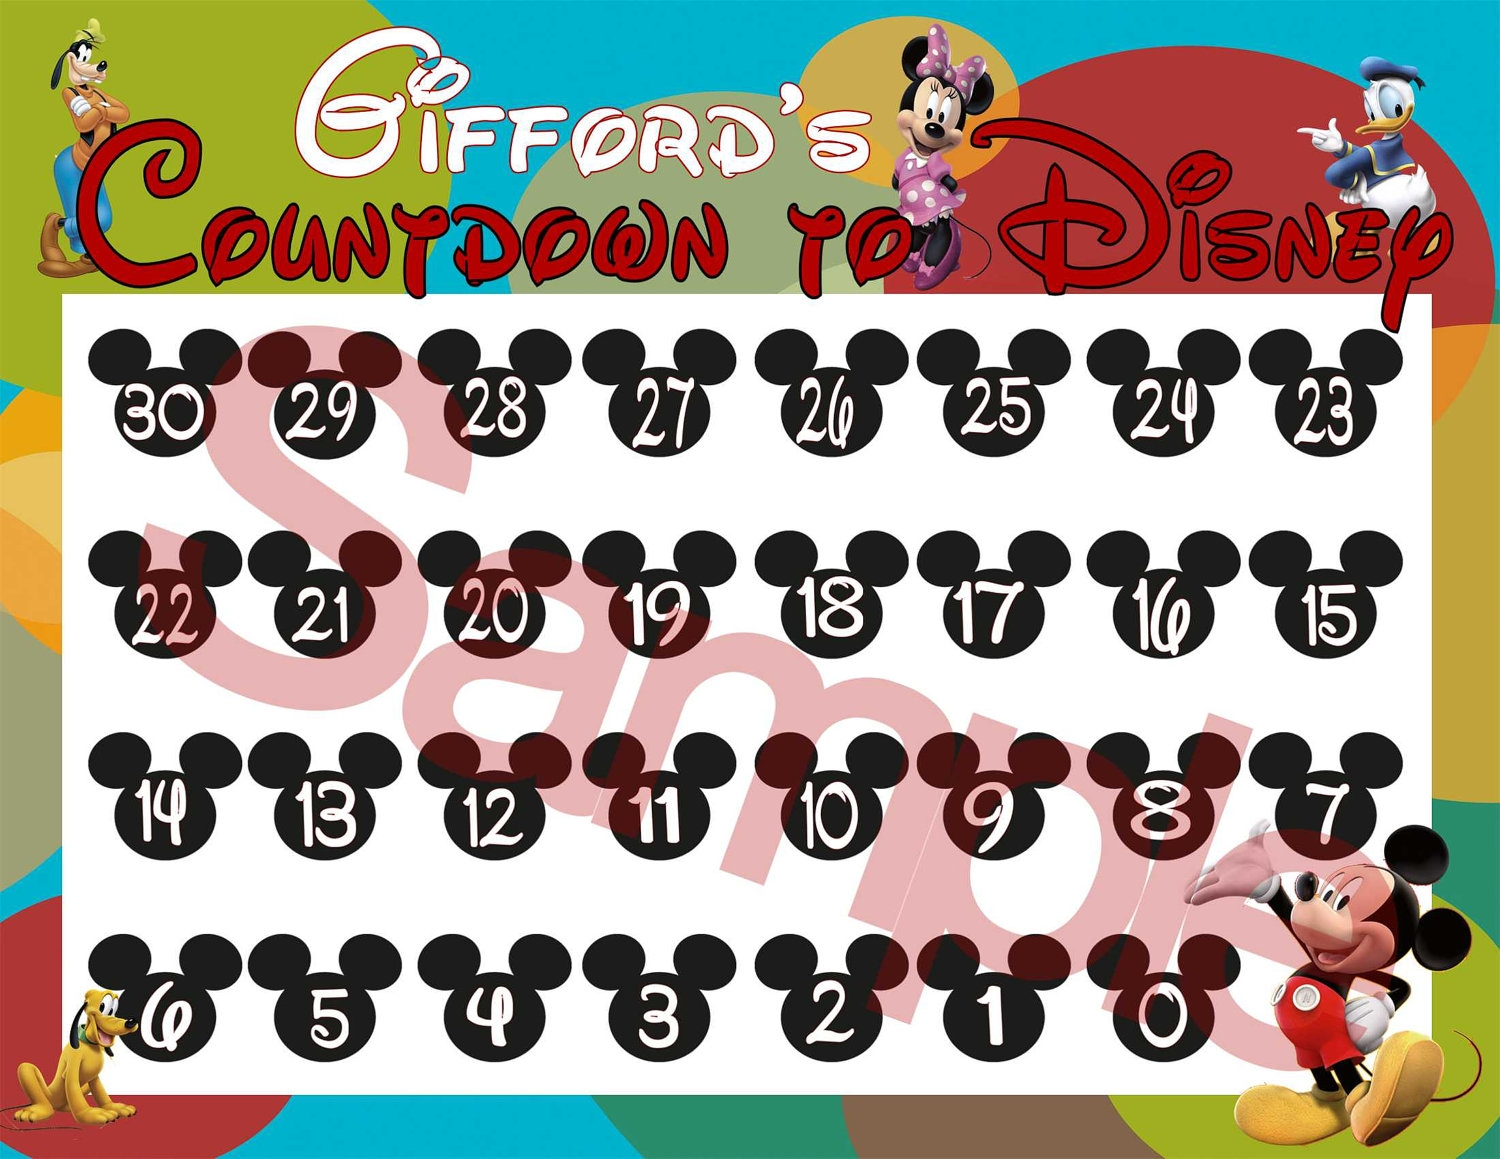 Cute Too Bad Hudsons Countdown Will Only Have One Number On It  Xjb